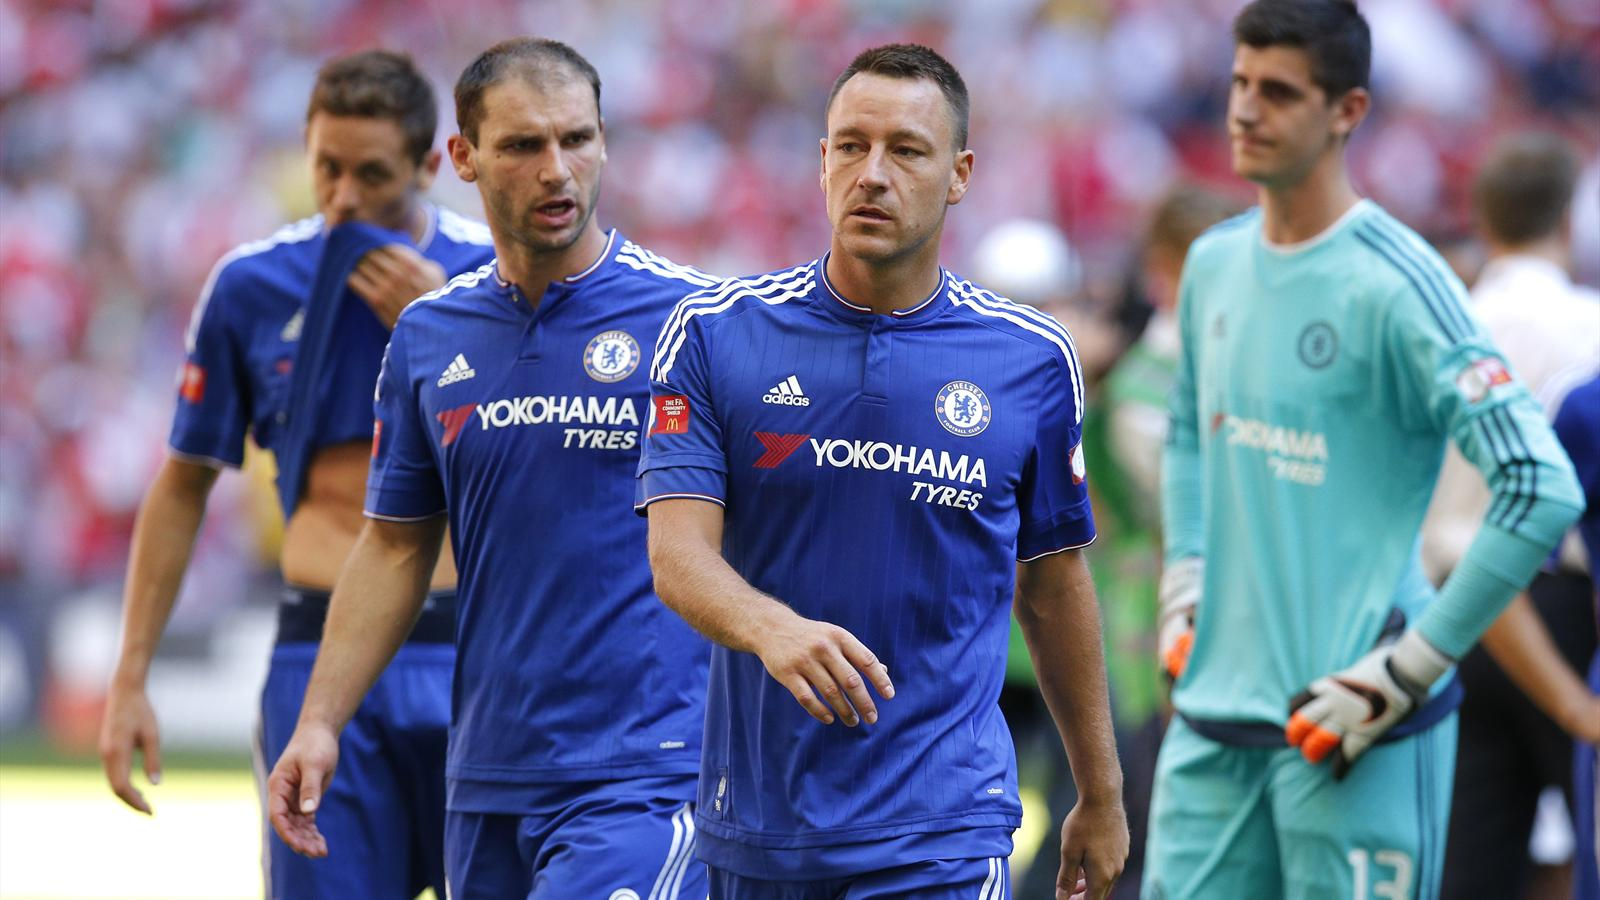 John Terry Losing To Arsenal In Community Shield Means Nothing